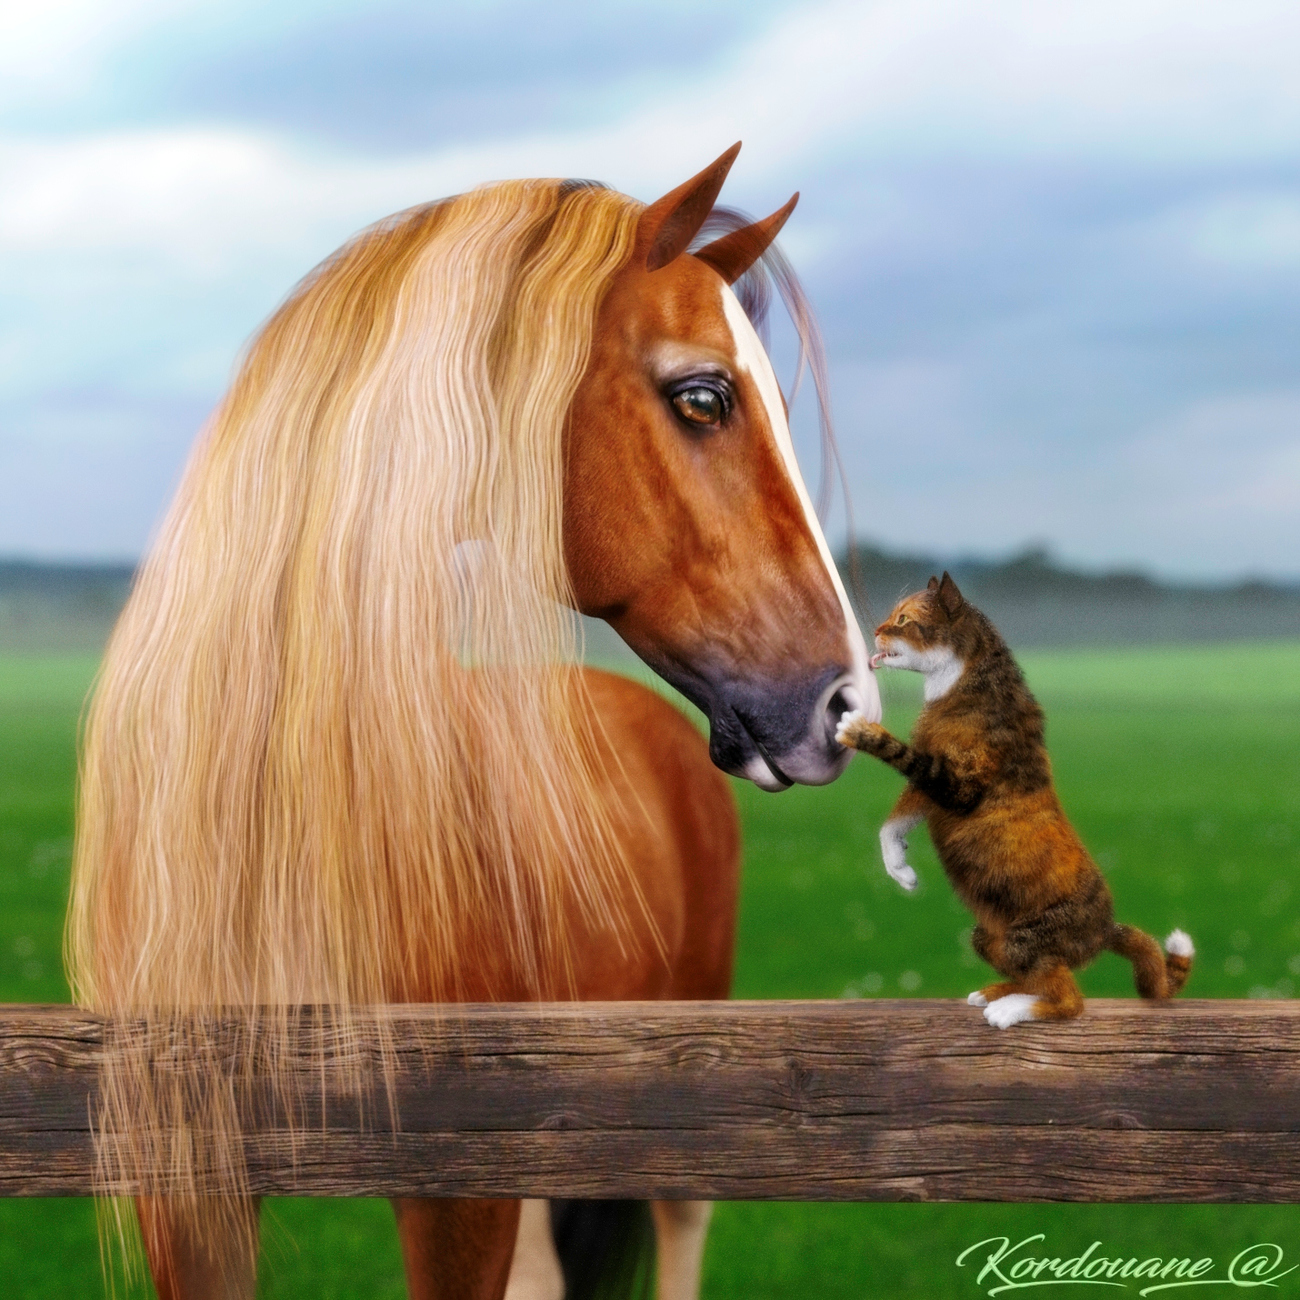 Friendship is not a question of species by Kordouane